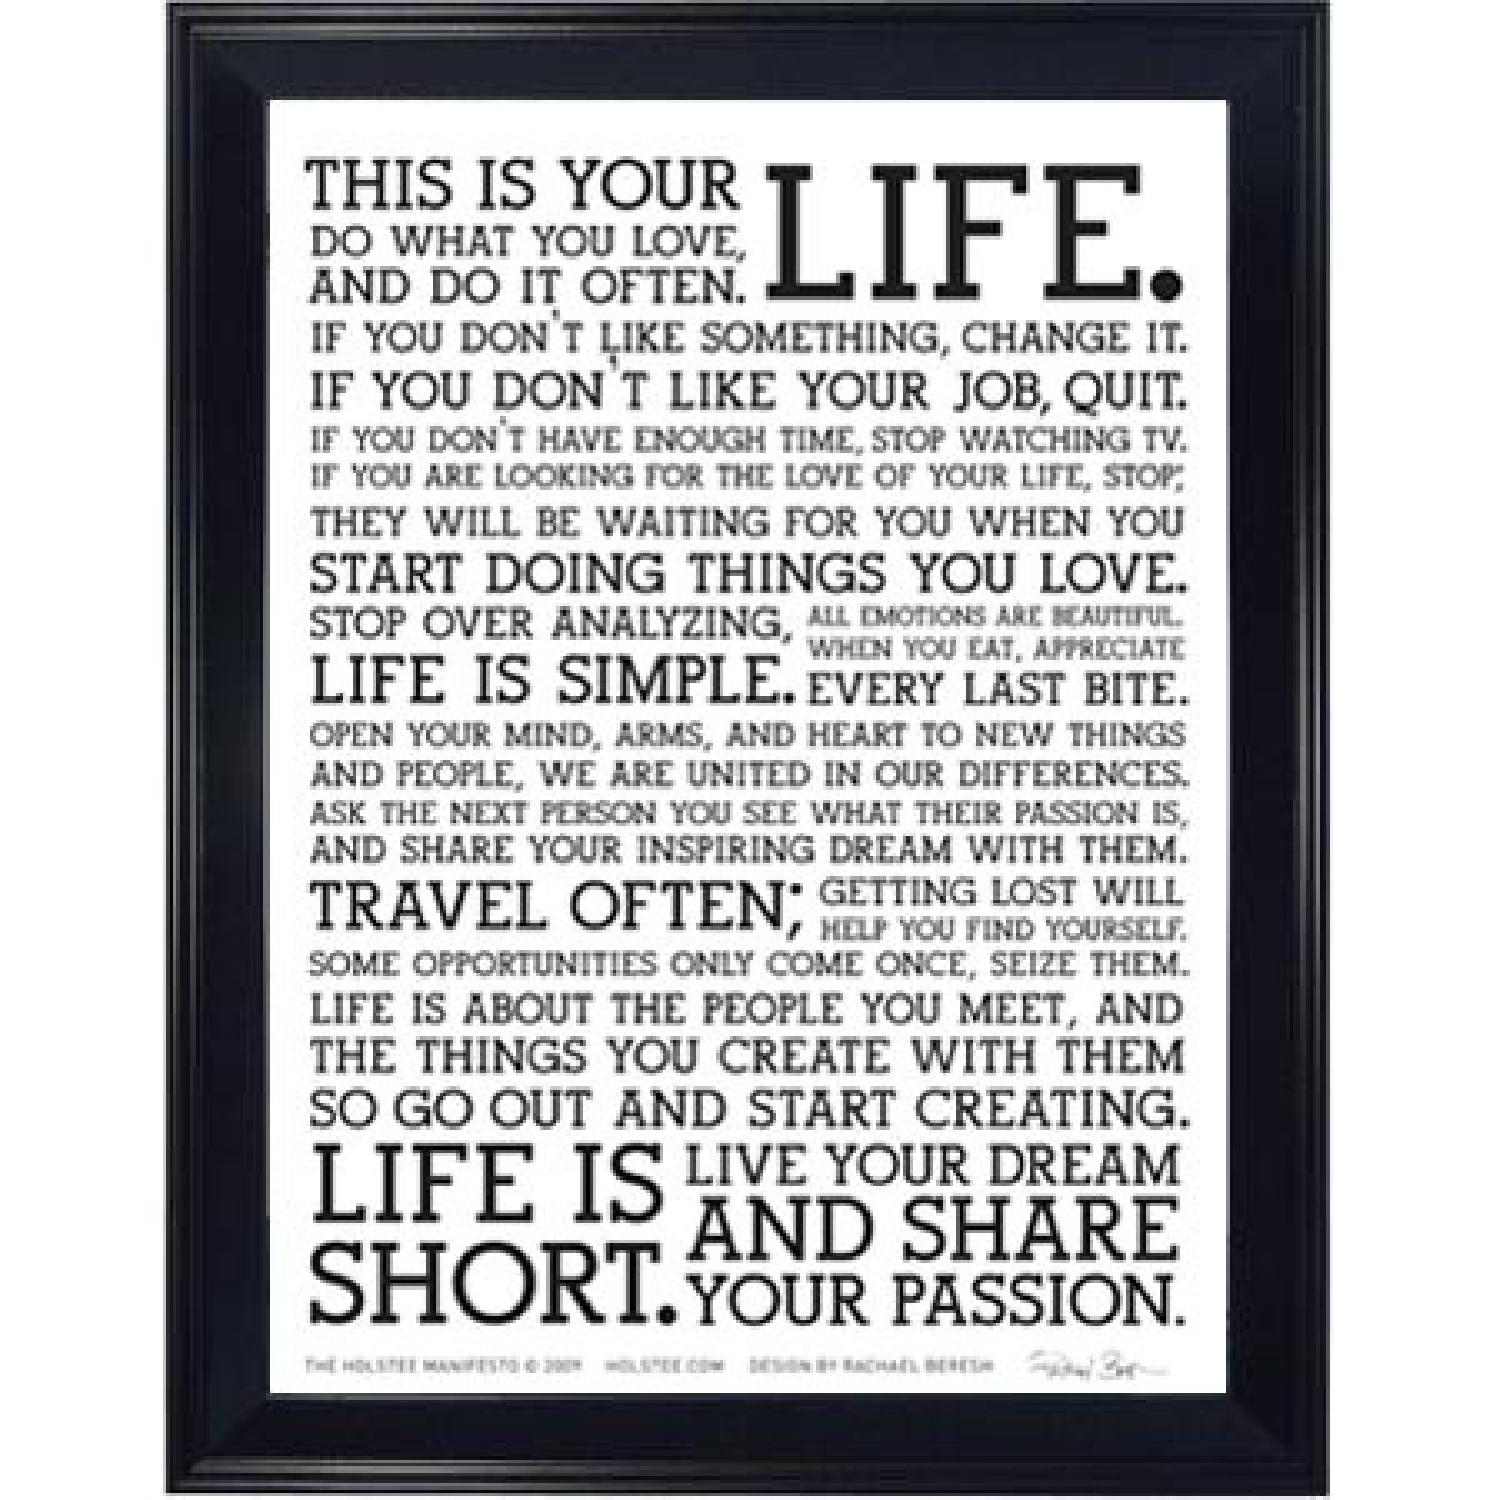 Framed Motivational Poster - This is Your Life - image-0